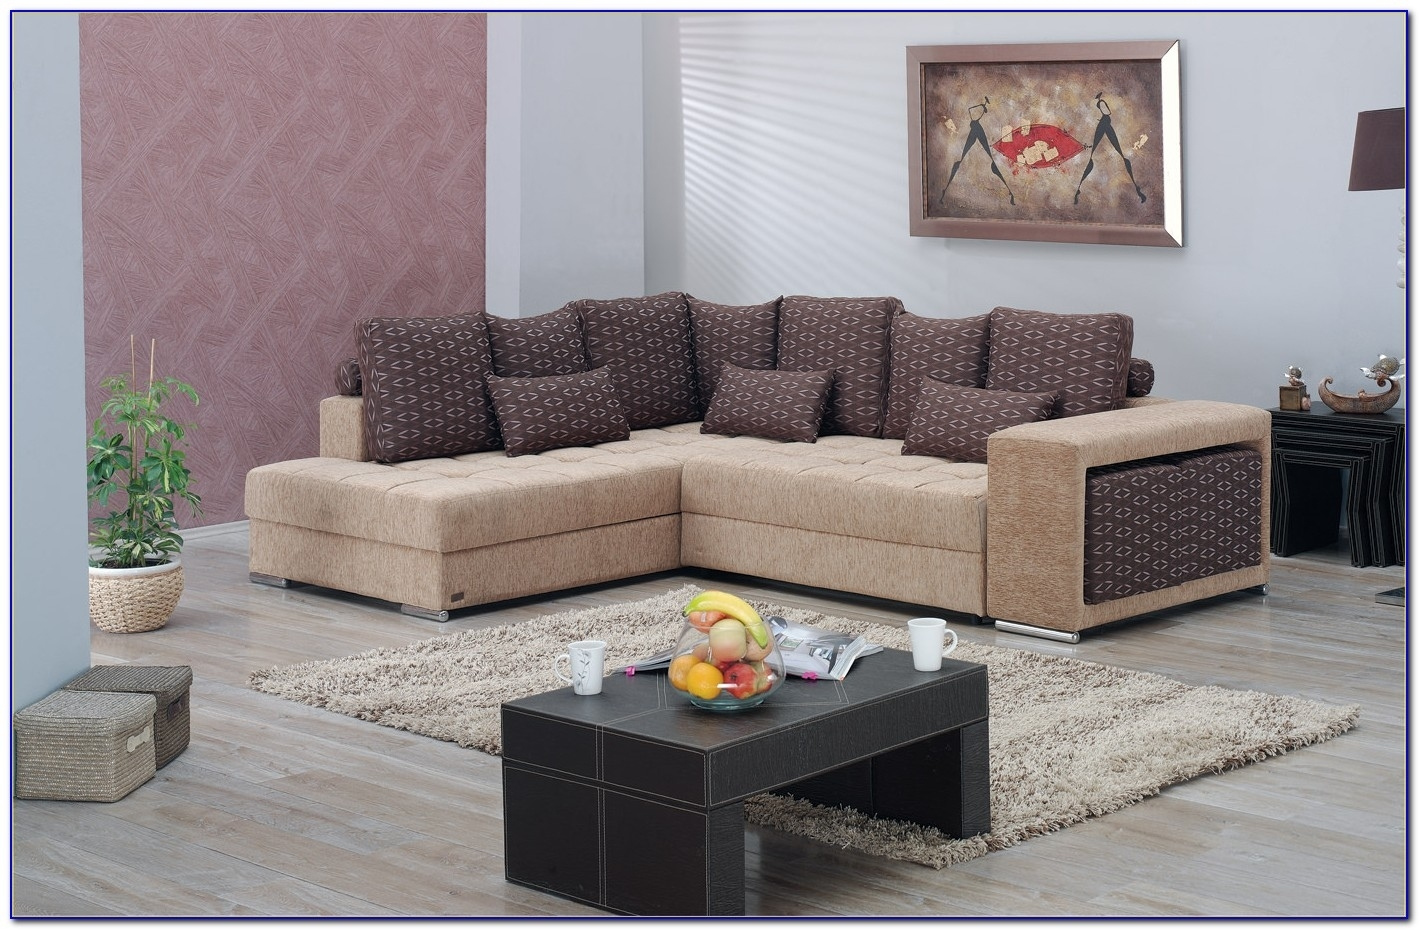 Fancy Kmart Sectional Sofa 82 For Sectional Sofas Ct With Kmart Within Kmart Sectional Sofas (View 9 of 10)